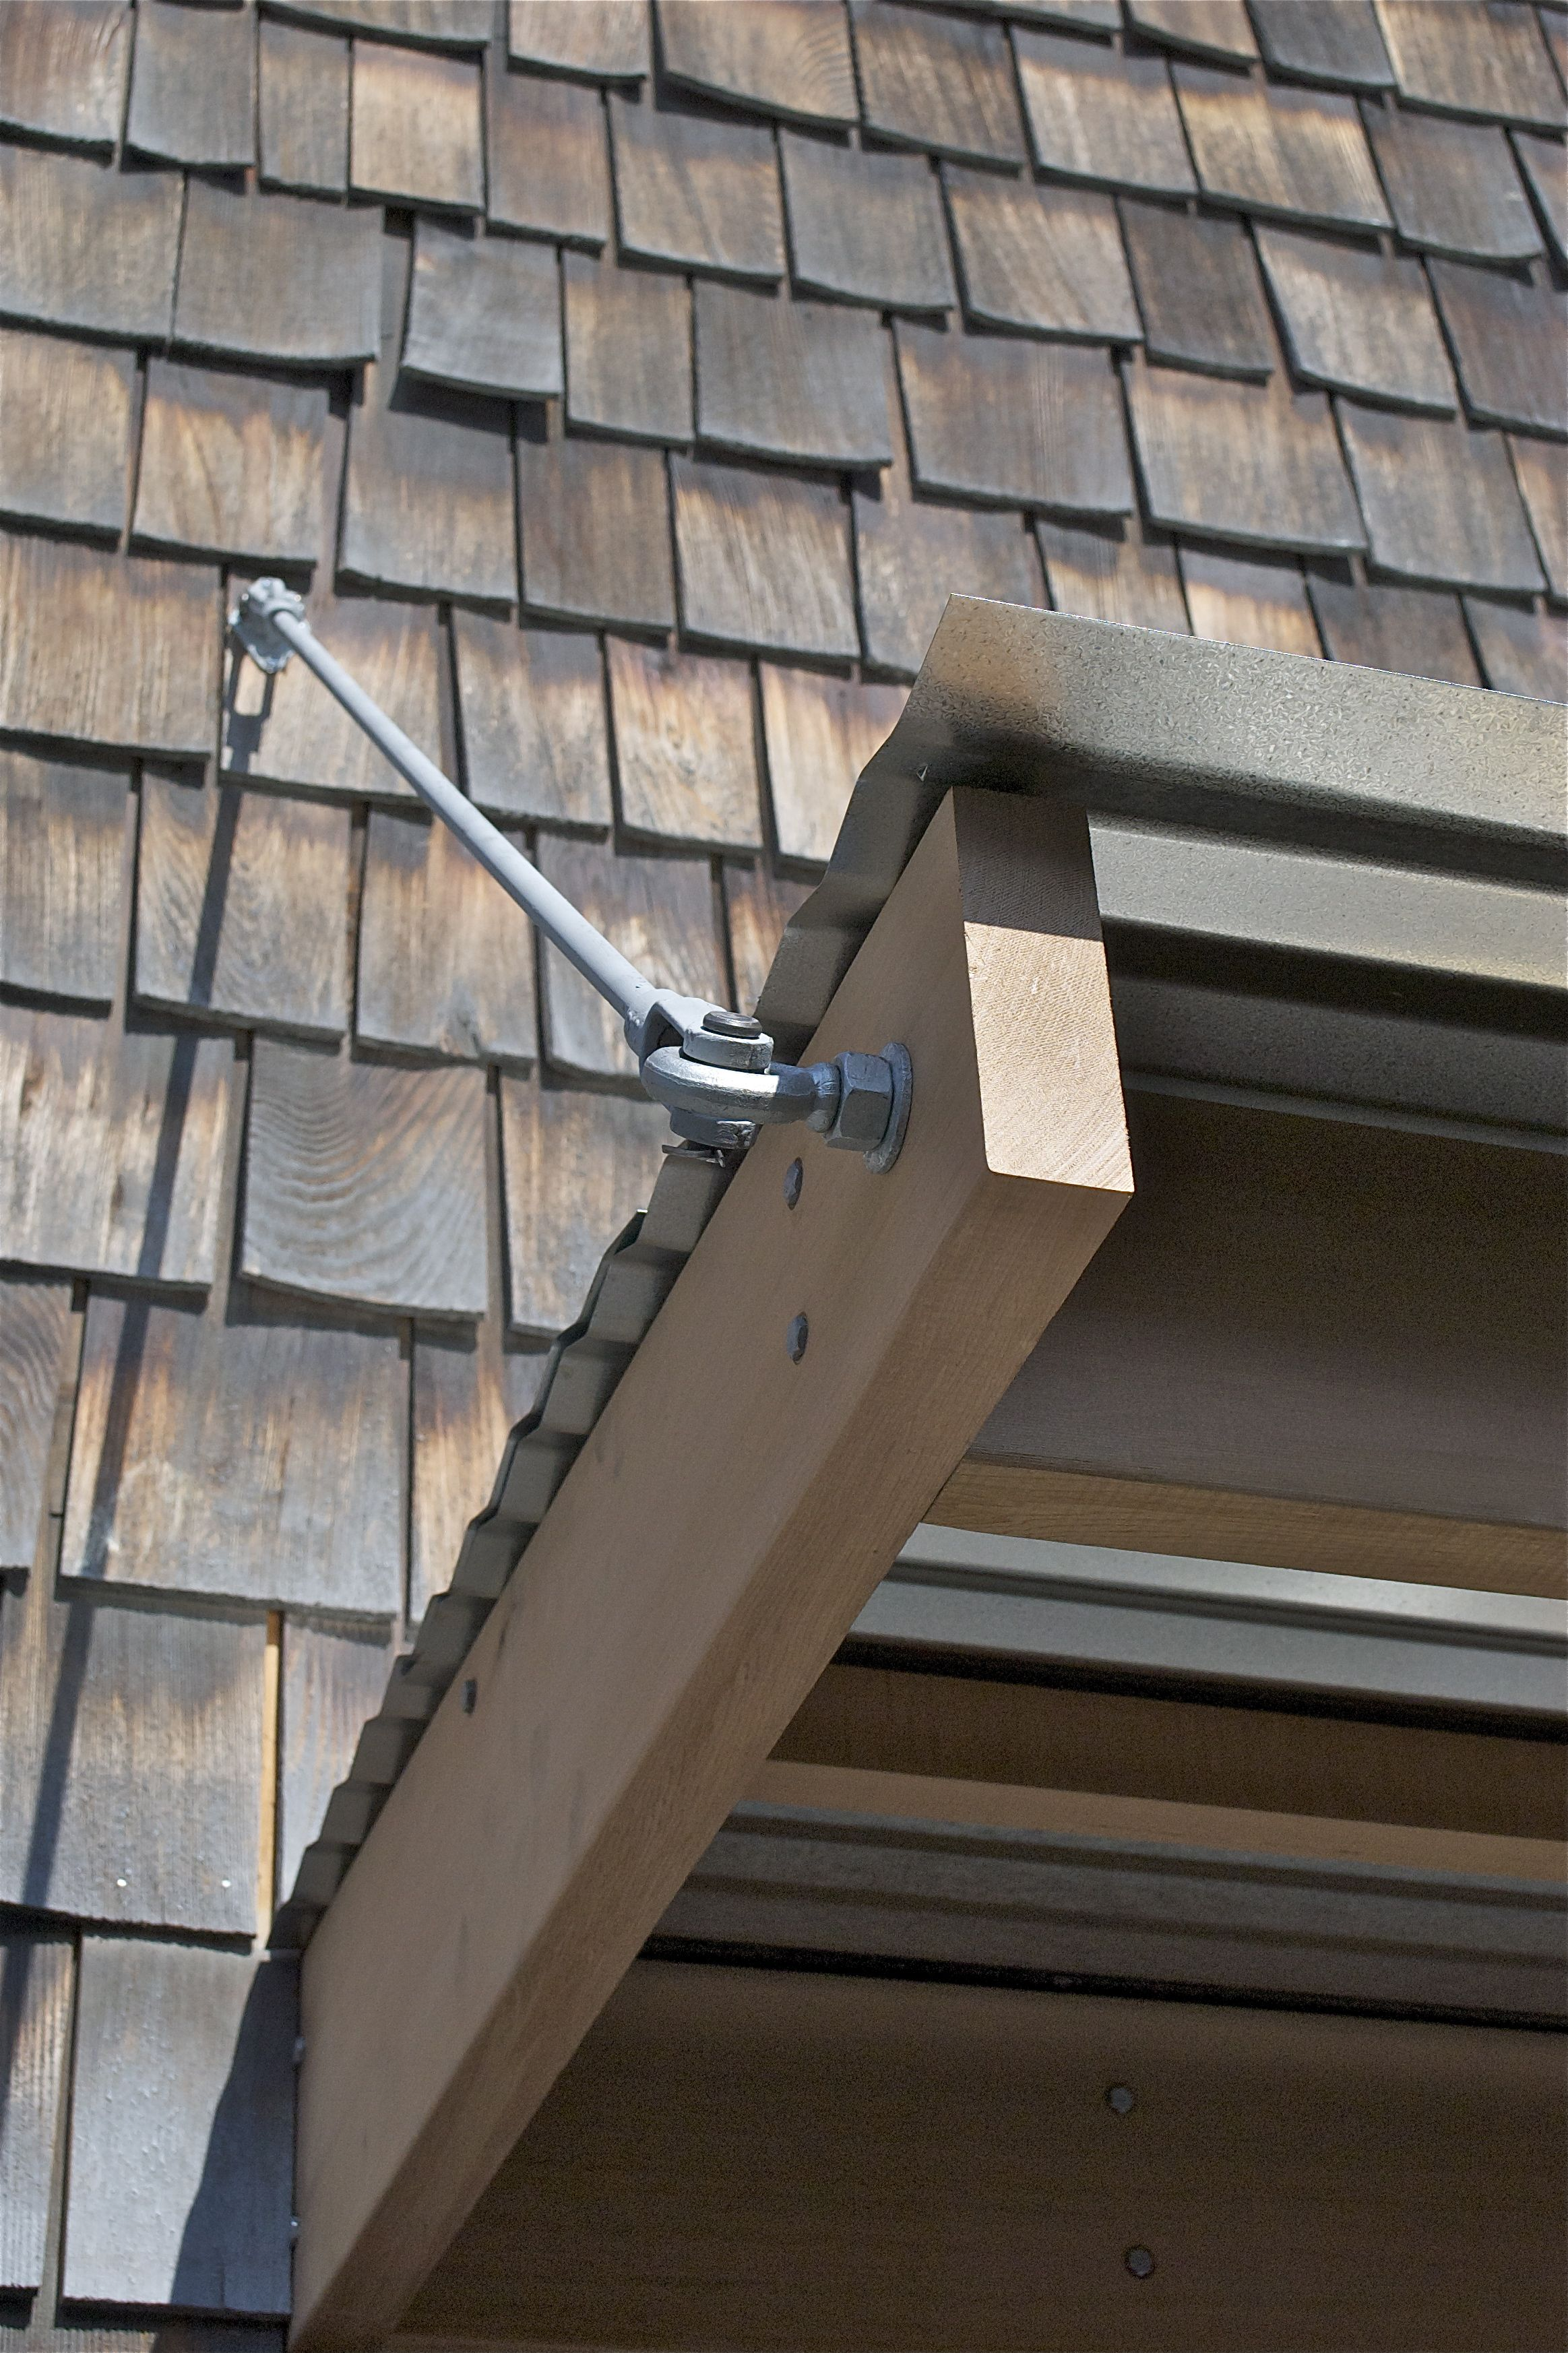 Image Result For Suspension Bars For Suspended Awning Roof Porch Canopy Kit Porch Canopy Canopy Design